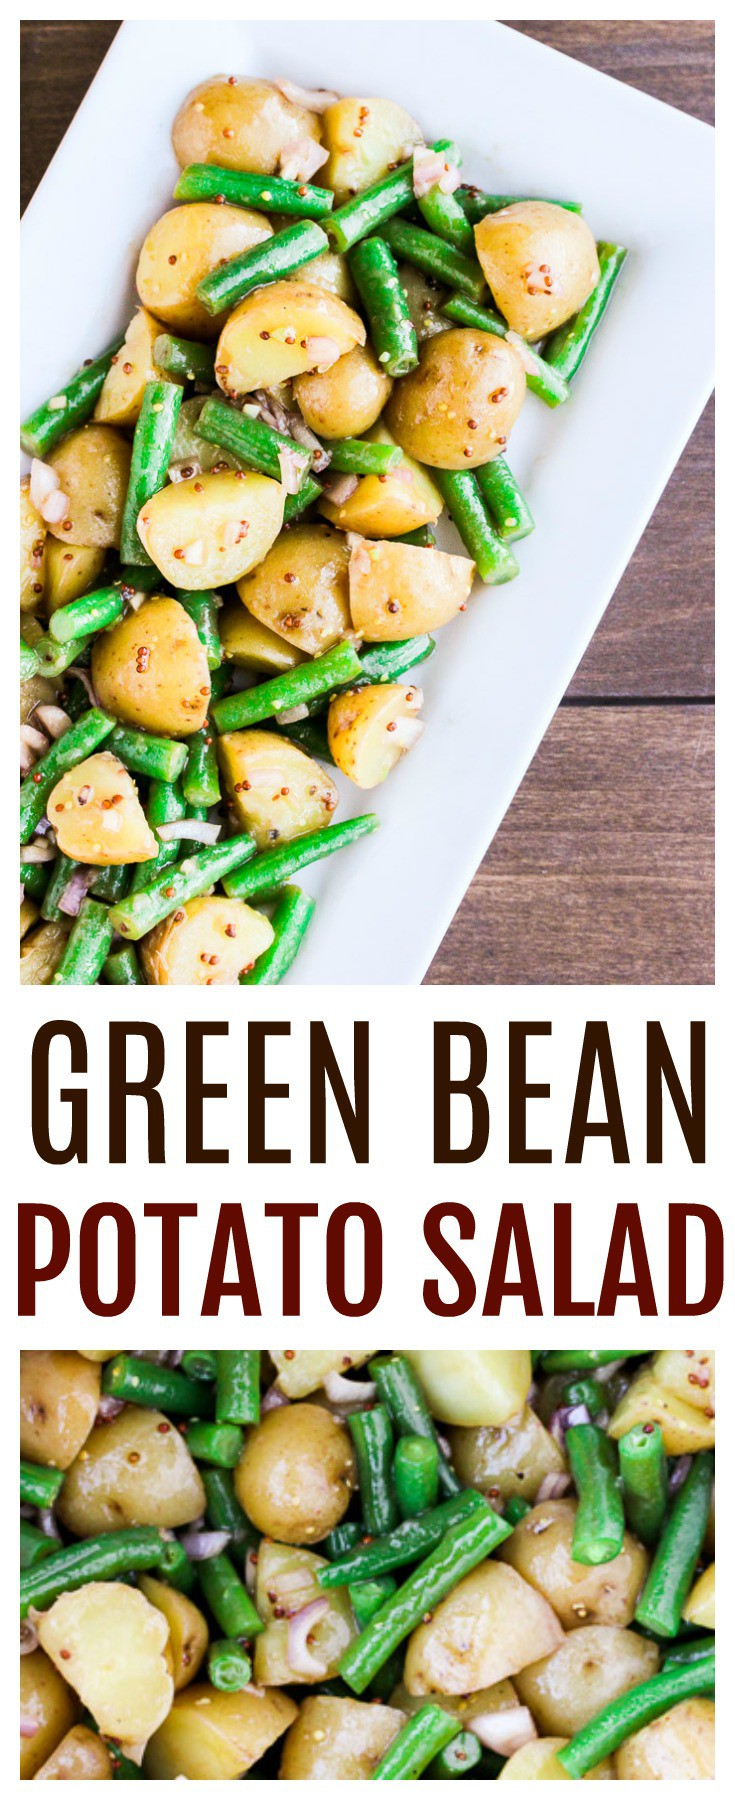 Green Bean Potato Salad is a delicious Summer side dish recipe that can be served warm or chilled! The zesty dressing really pulls everything together! | barbecue | cookout | gluten free | #dlbrecipes #potatosalad #greenbeansalad #sidedish #glutenfree